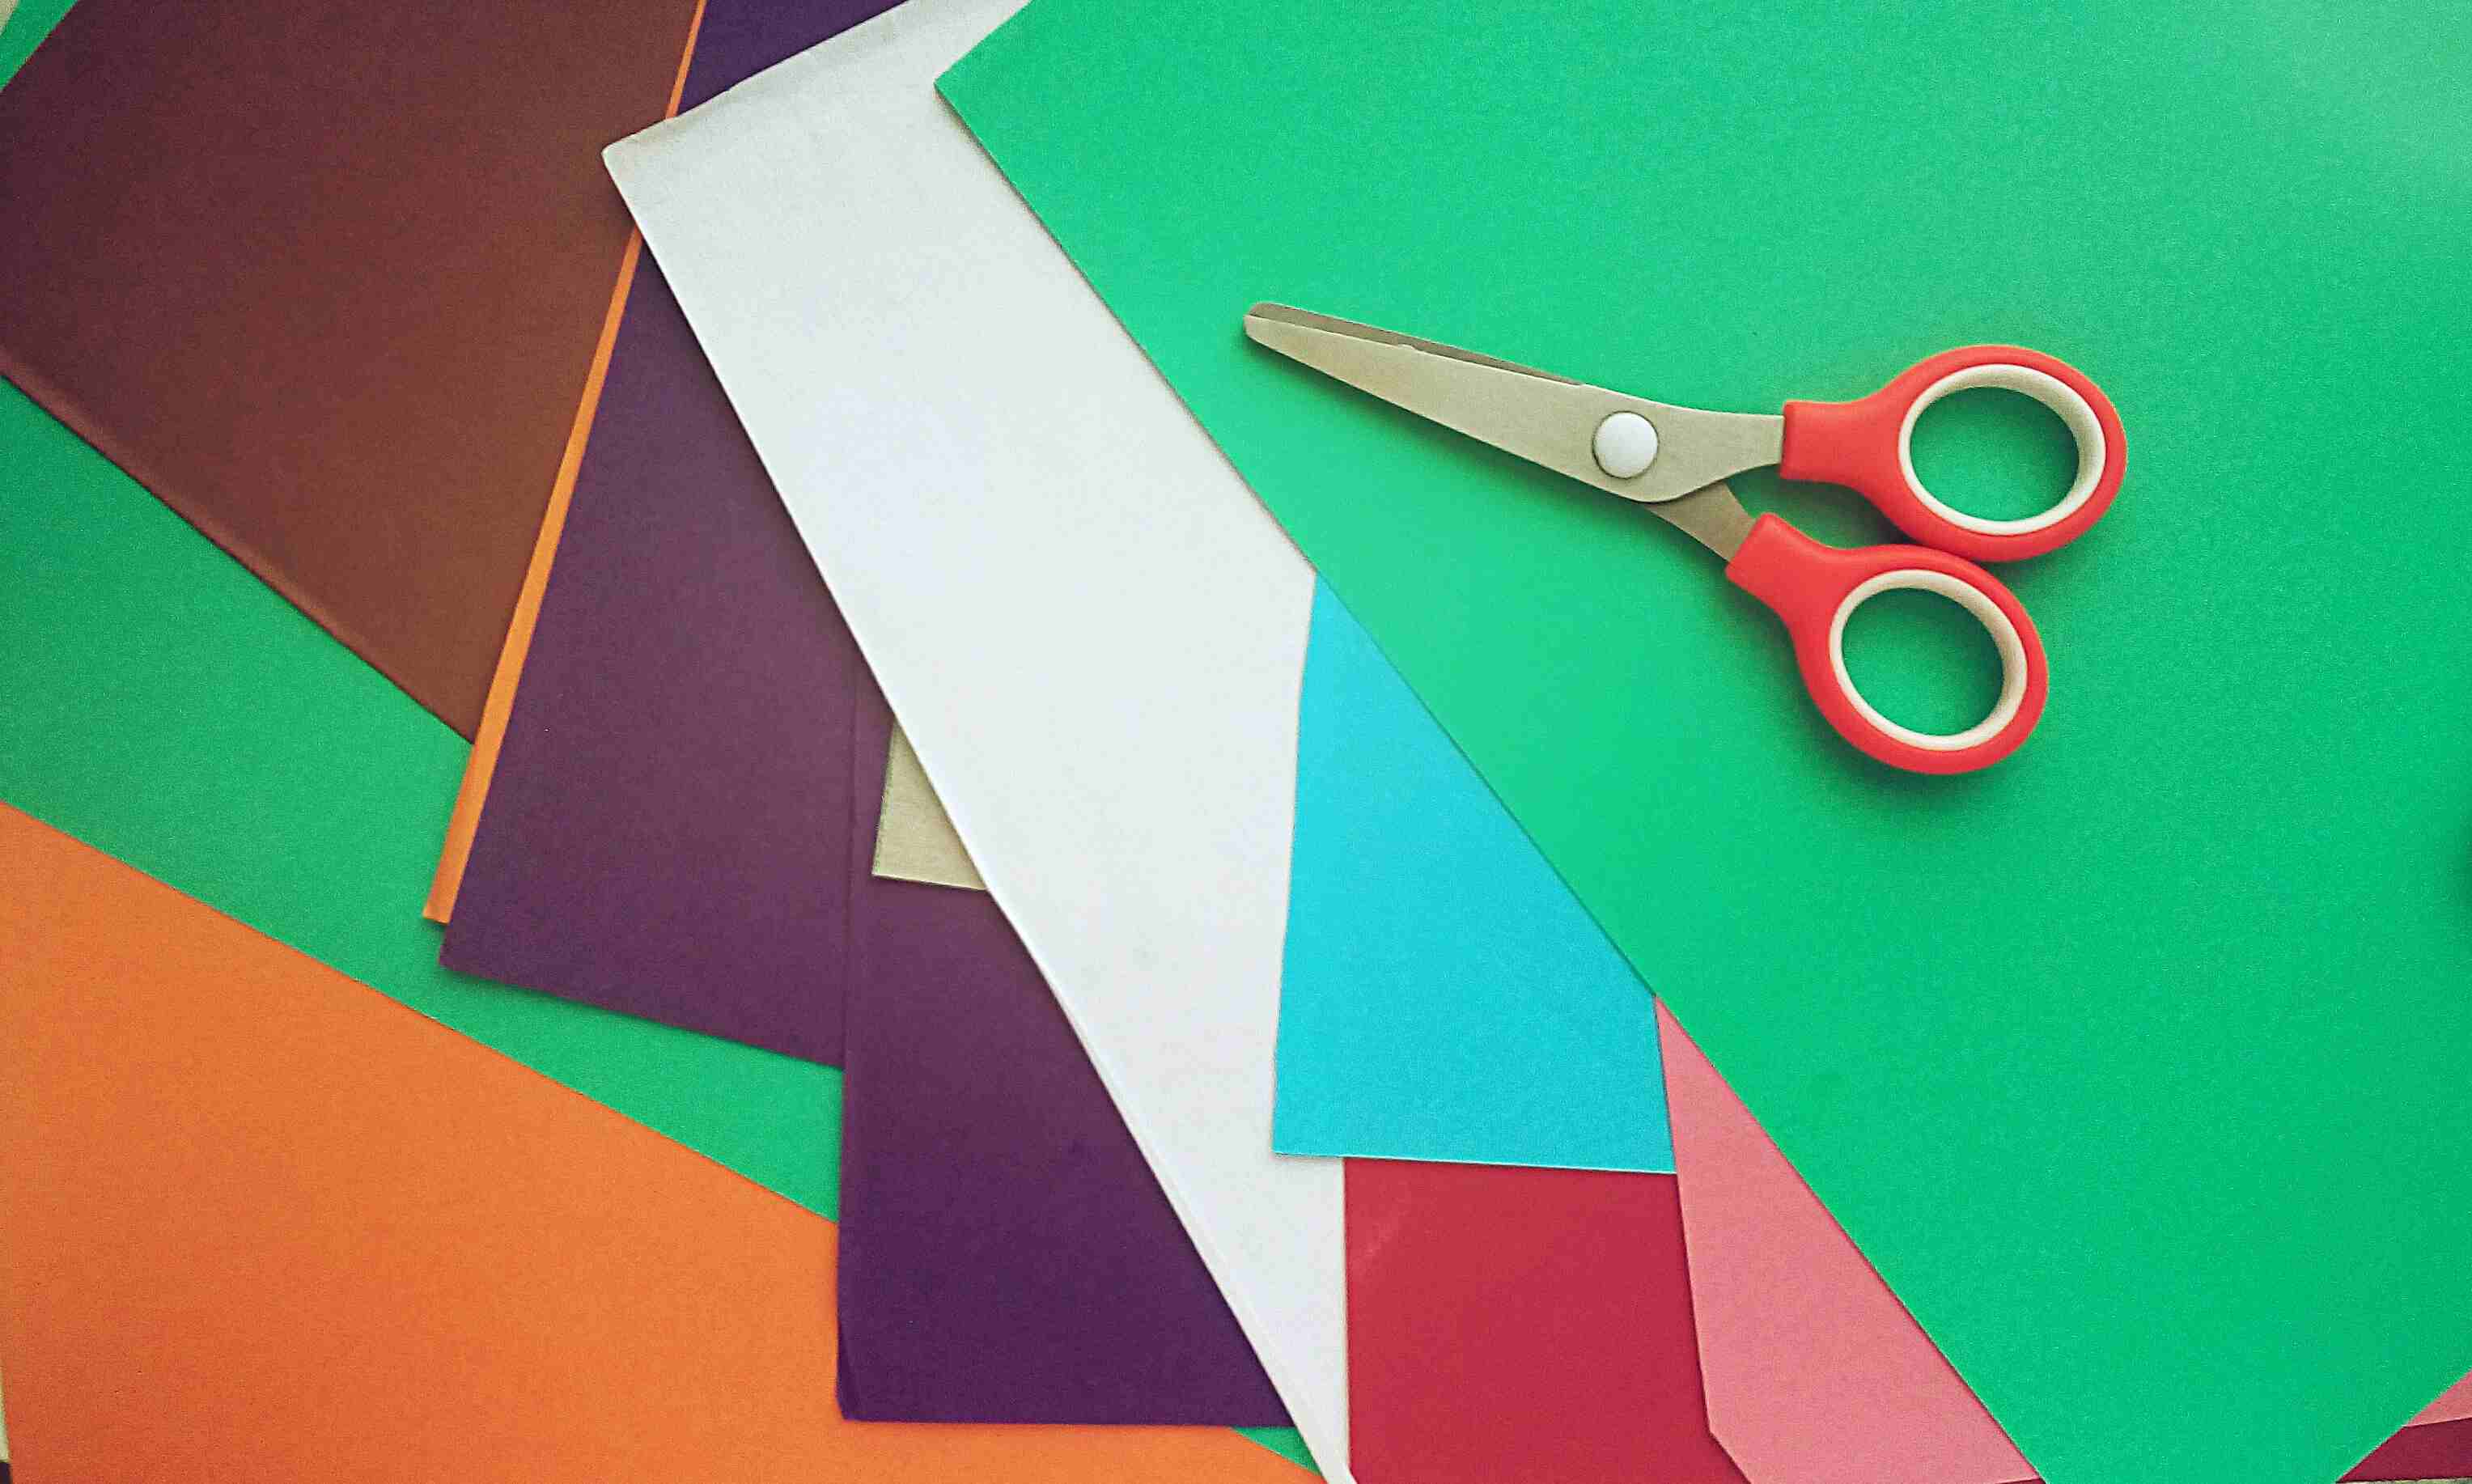 10 Cutting Tools for Crafters